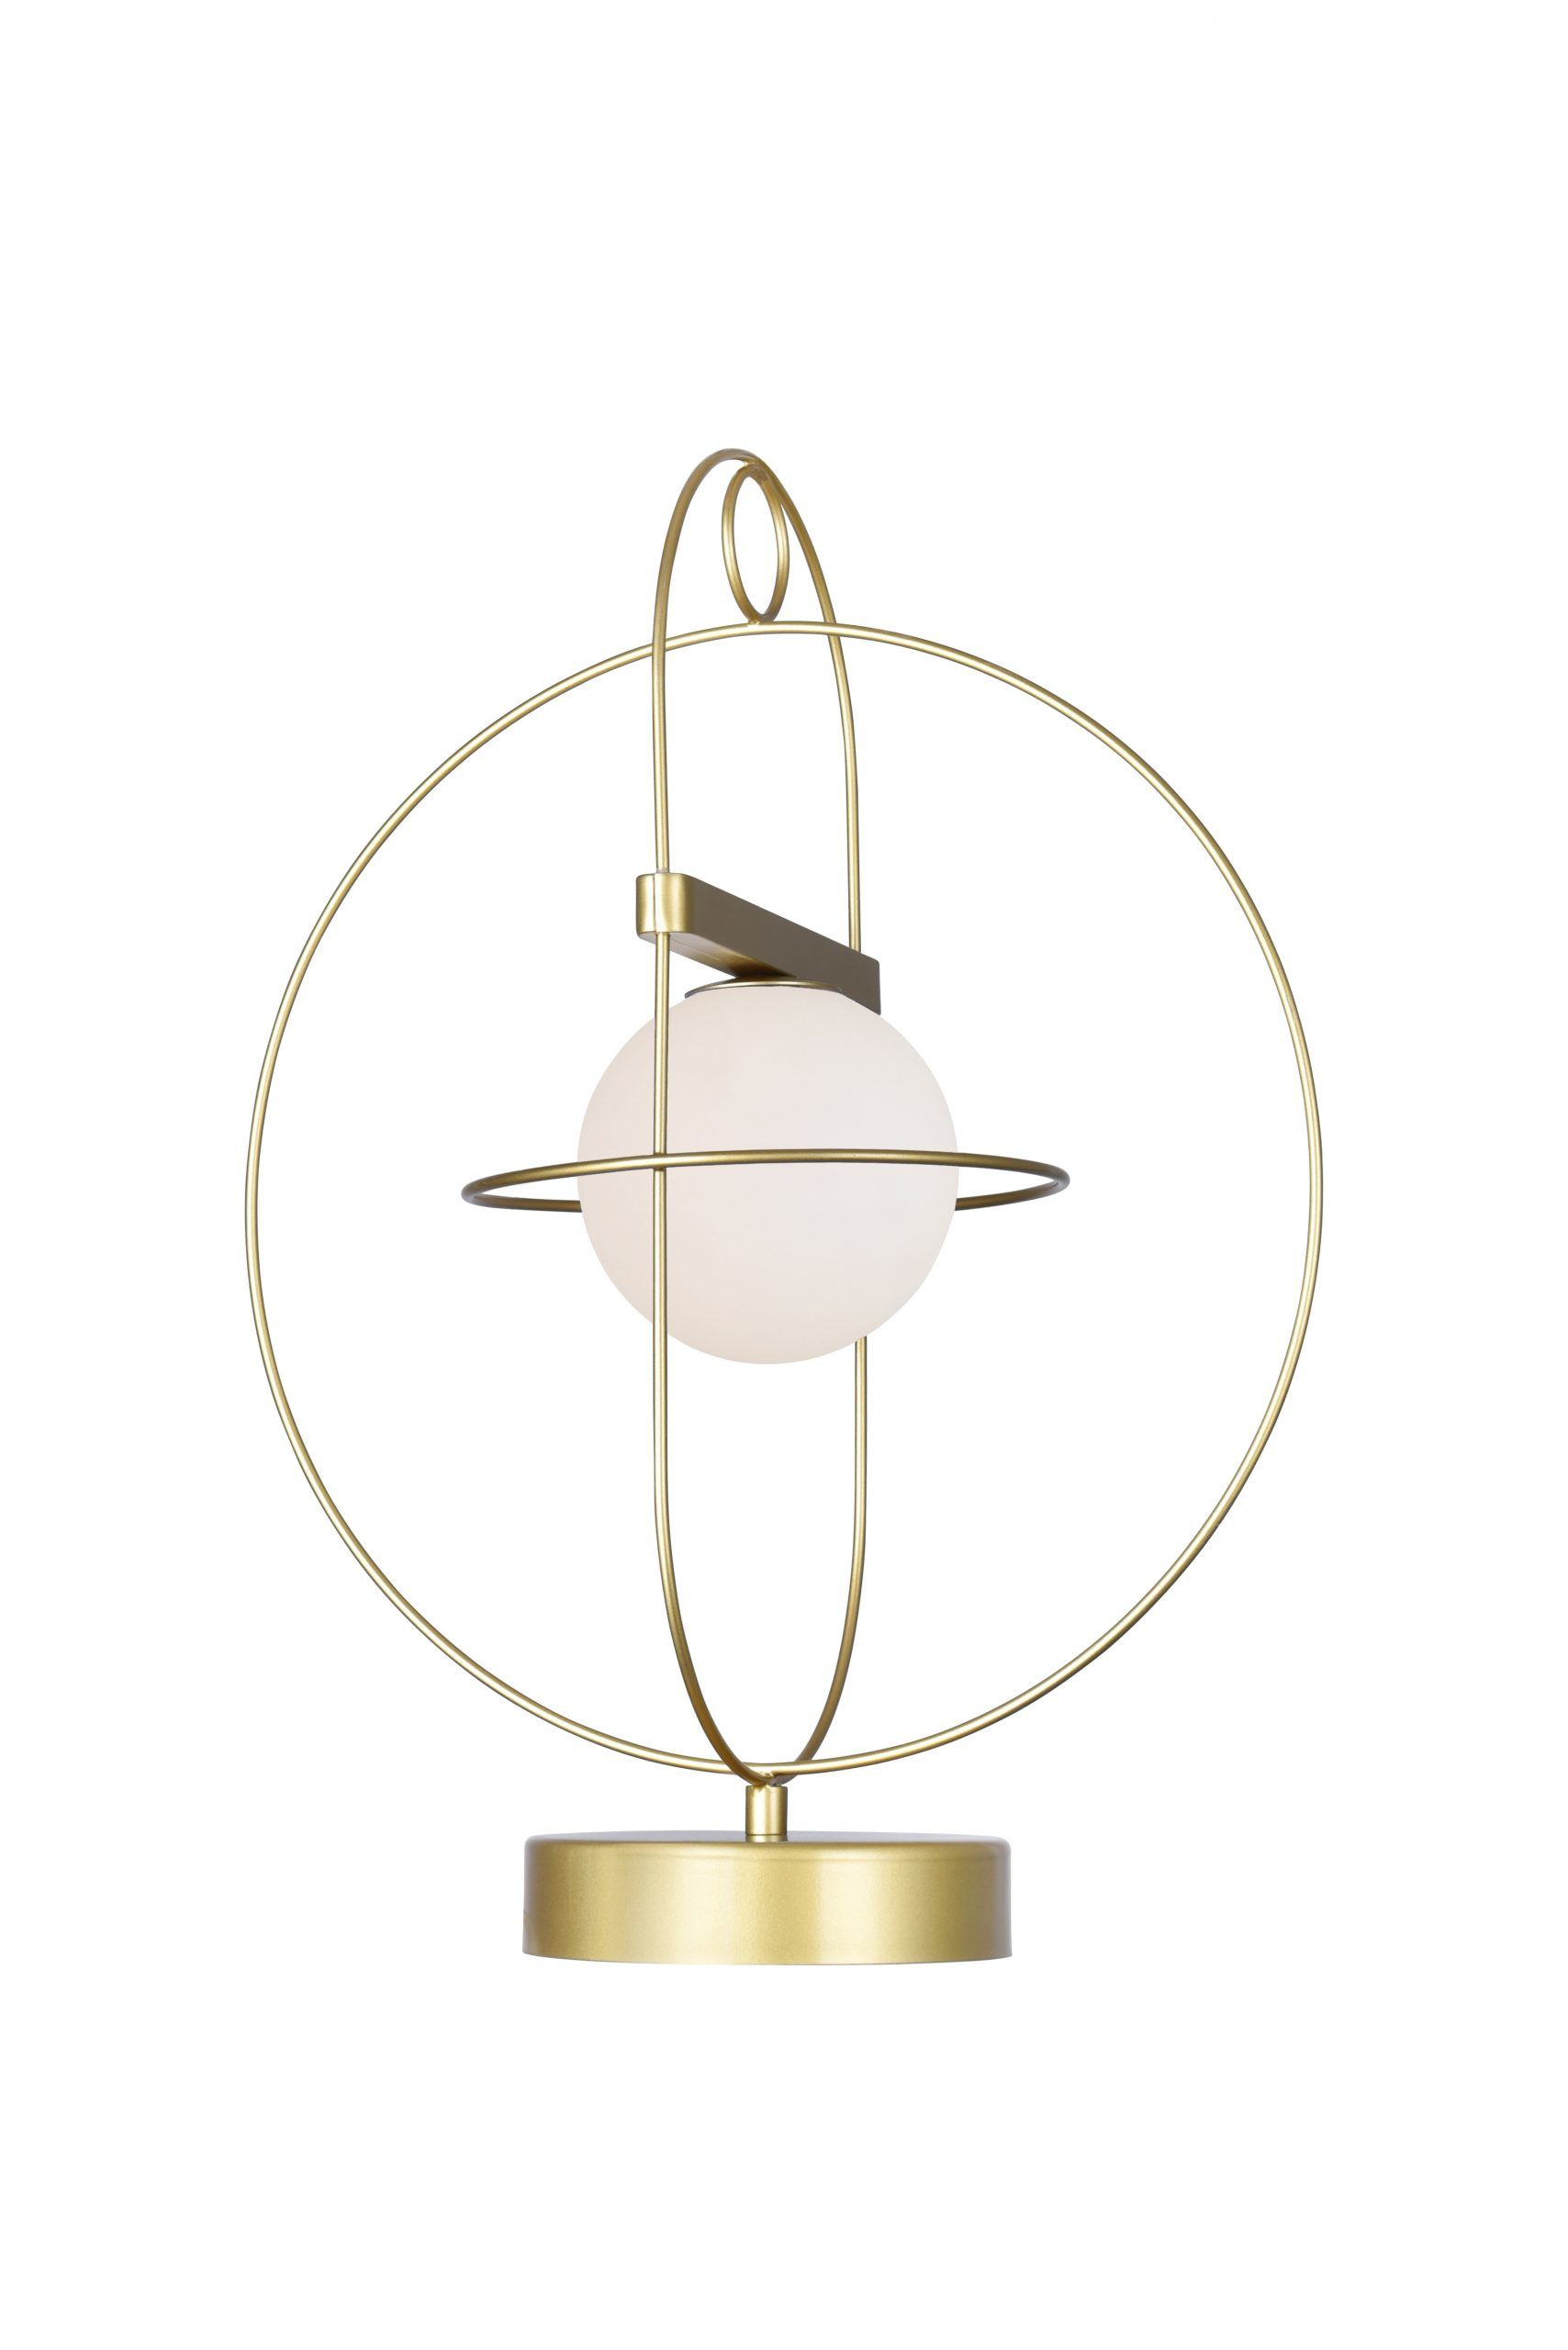 1 Light Lamp with Medallion Gold Finish